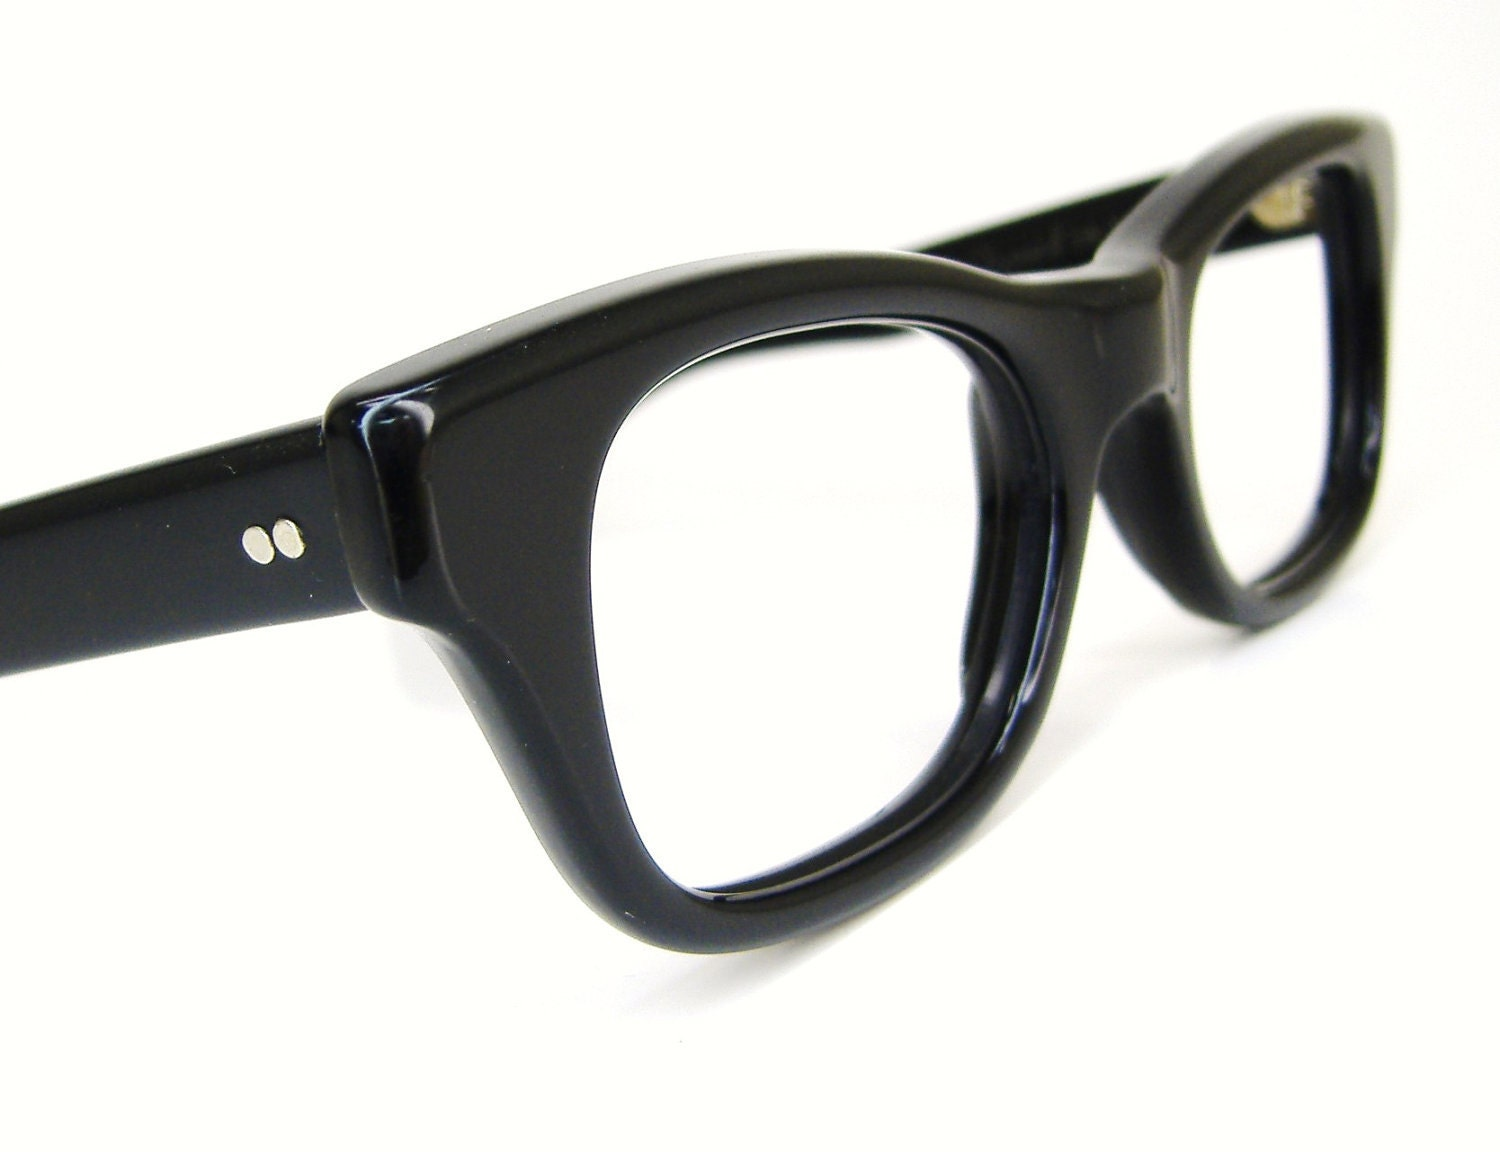 Glasses Frame For Thick Lenses : RESERVED Vintage 50s Thick Black Nerd Glasses Eyeglasses Frame